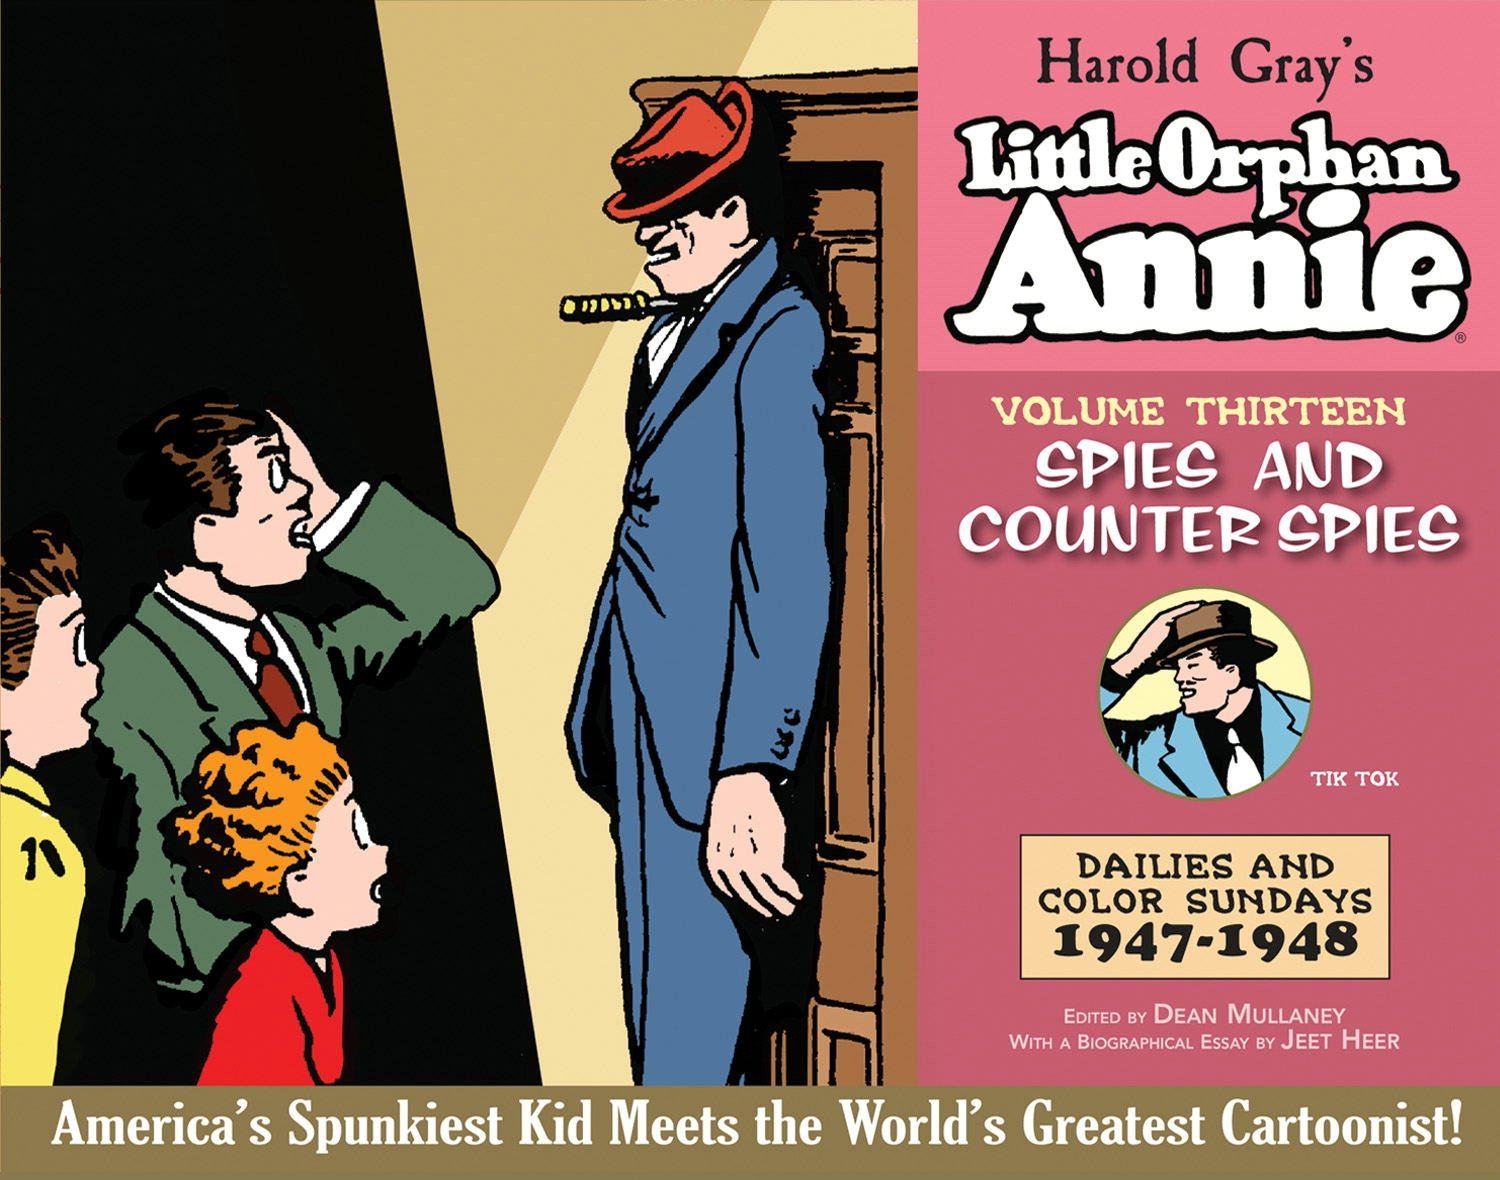 Complete Little Orphan Annie Volume 13 ebook